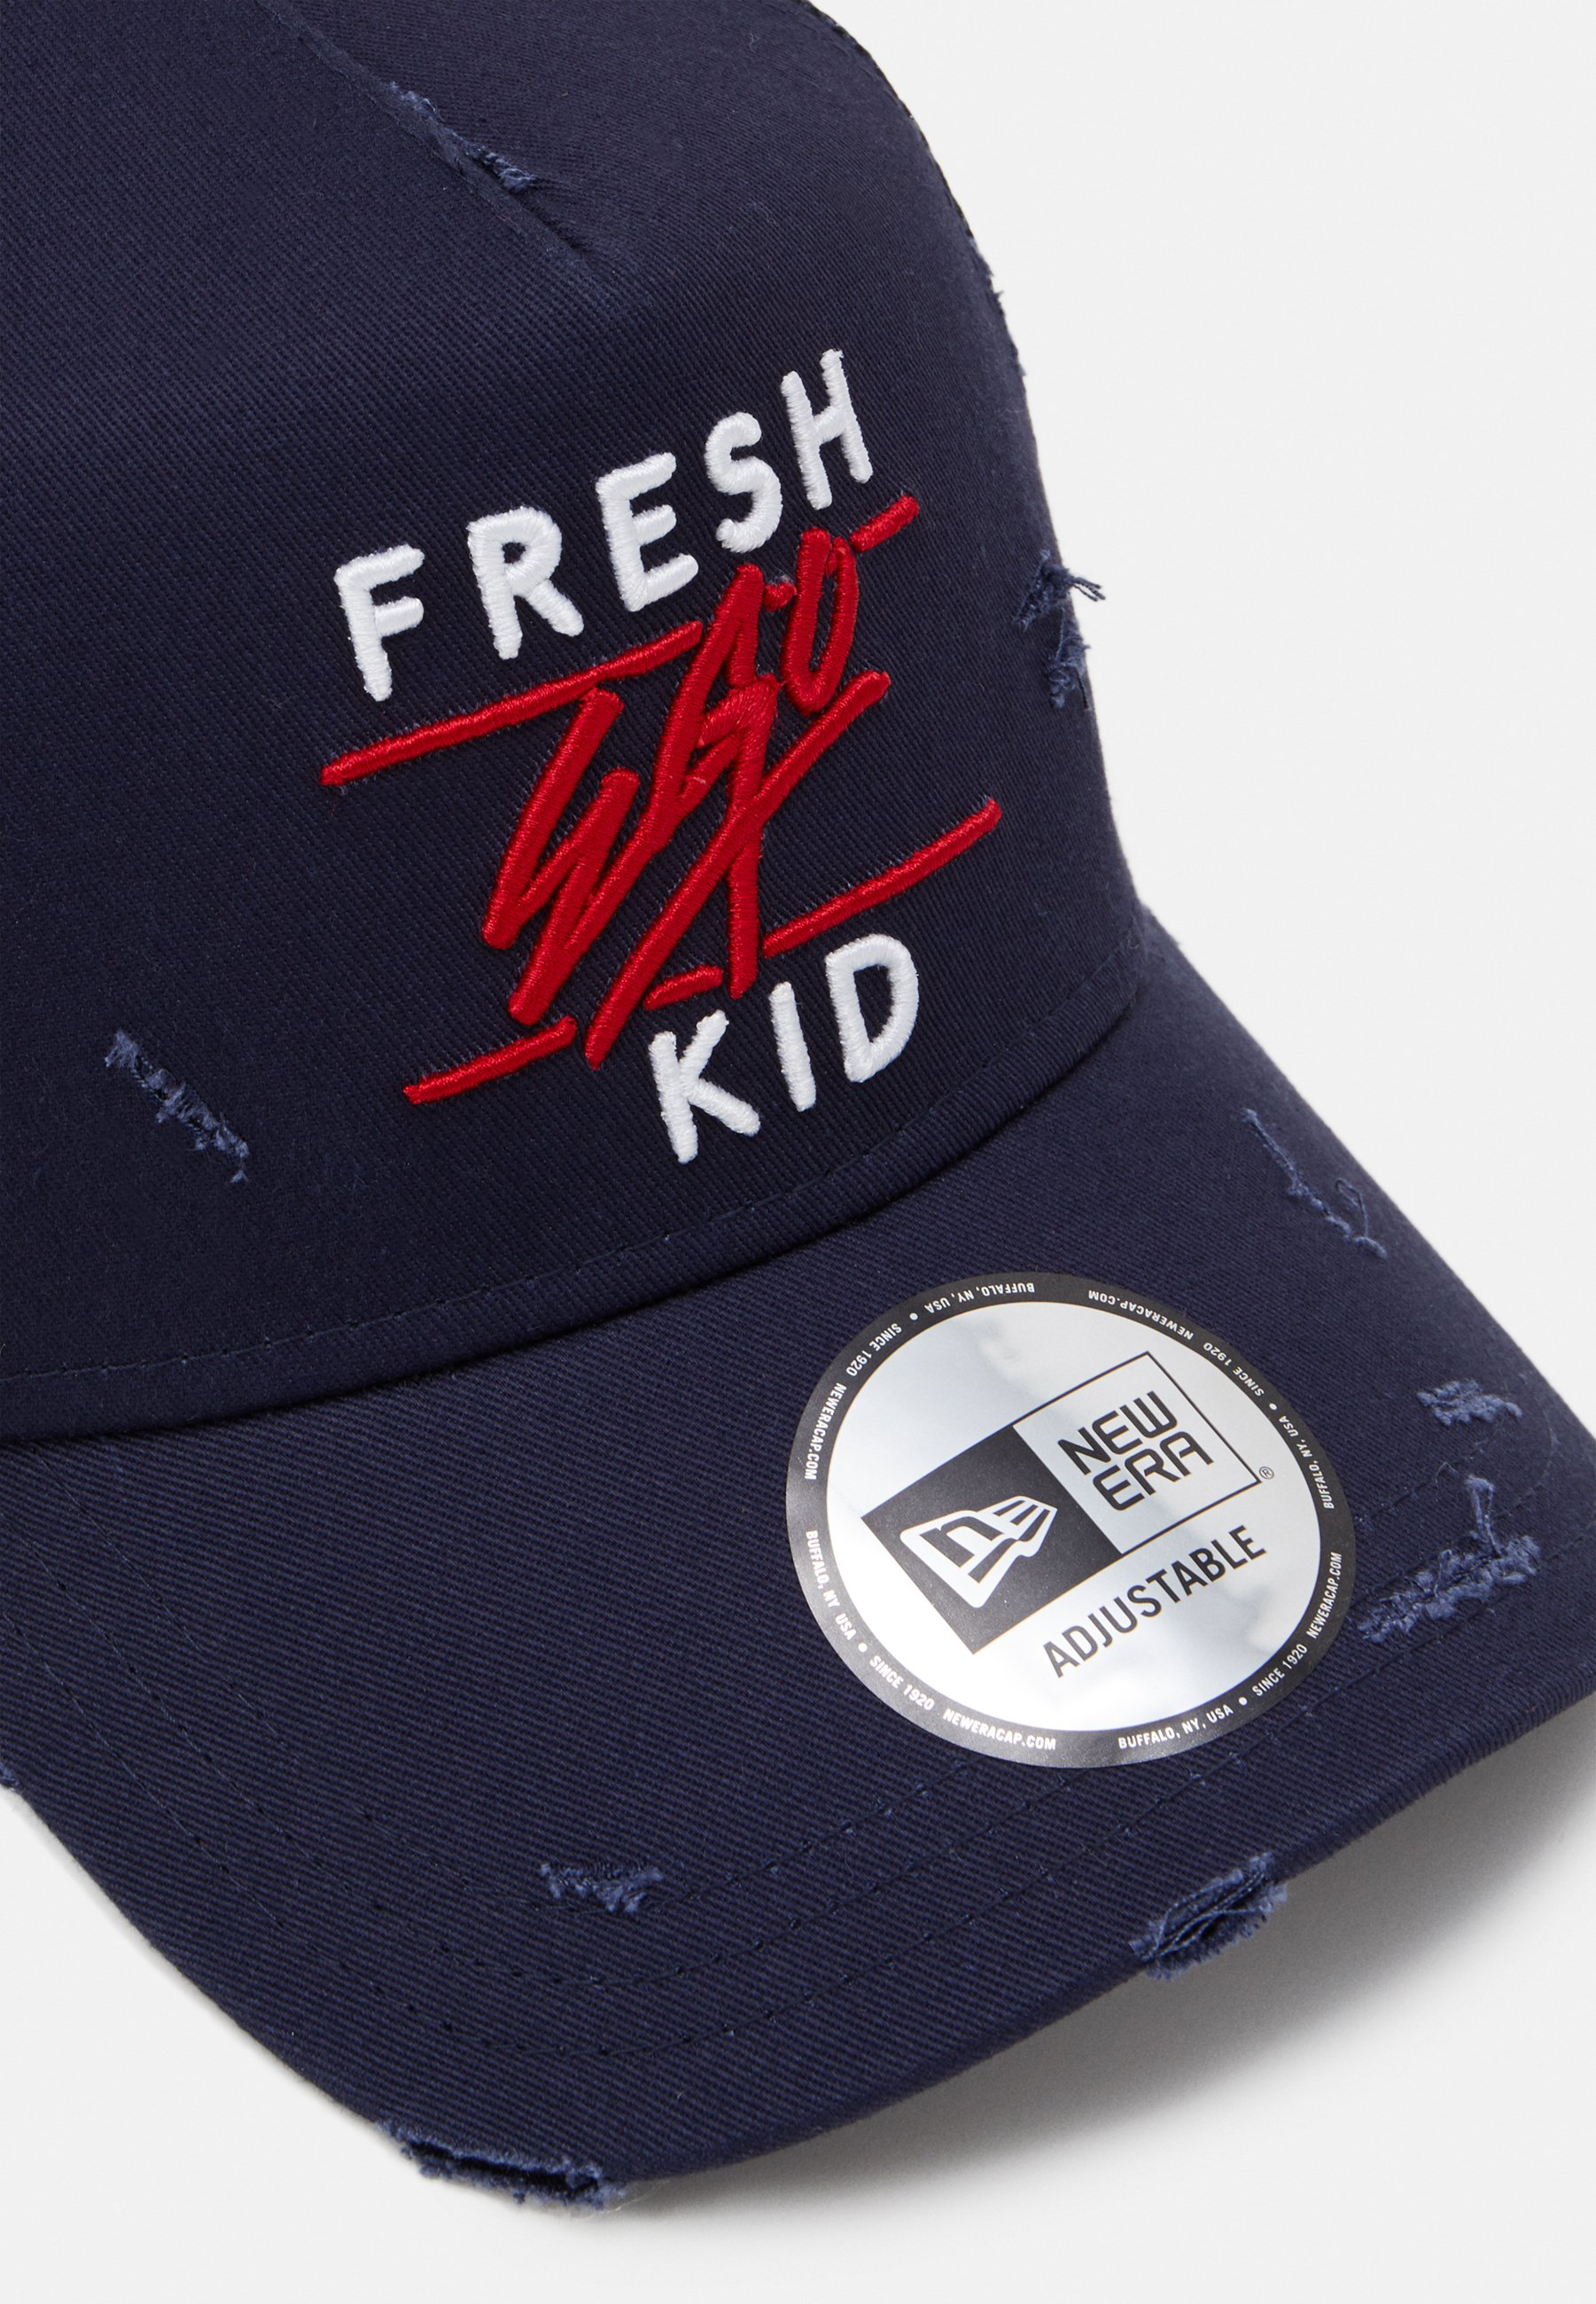 New Era Distressed Trucker - Cap Navy/dunkelblau